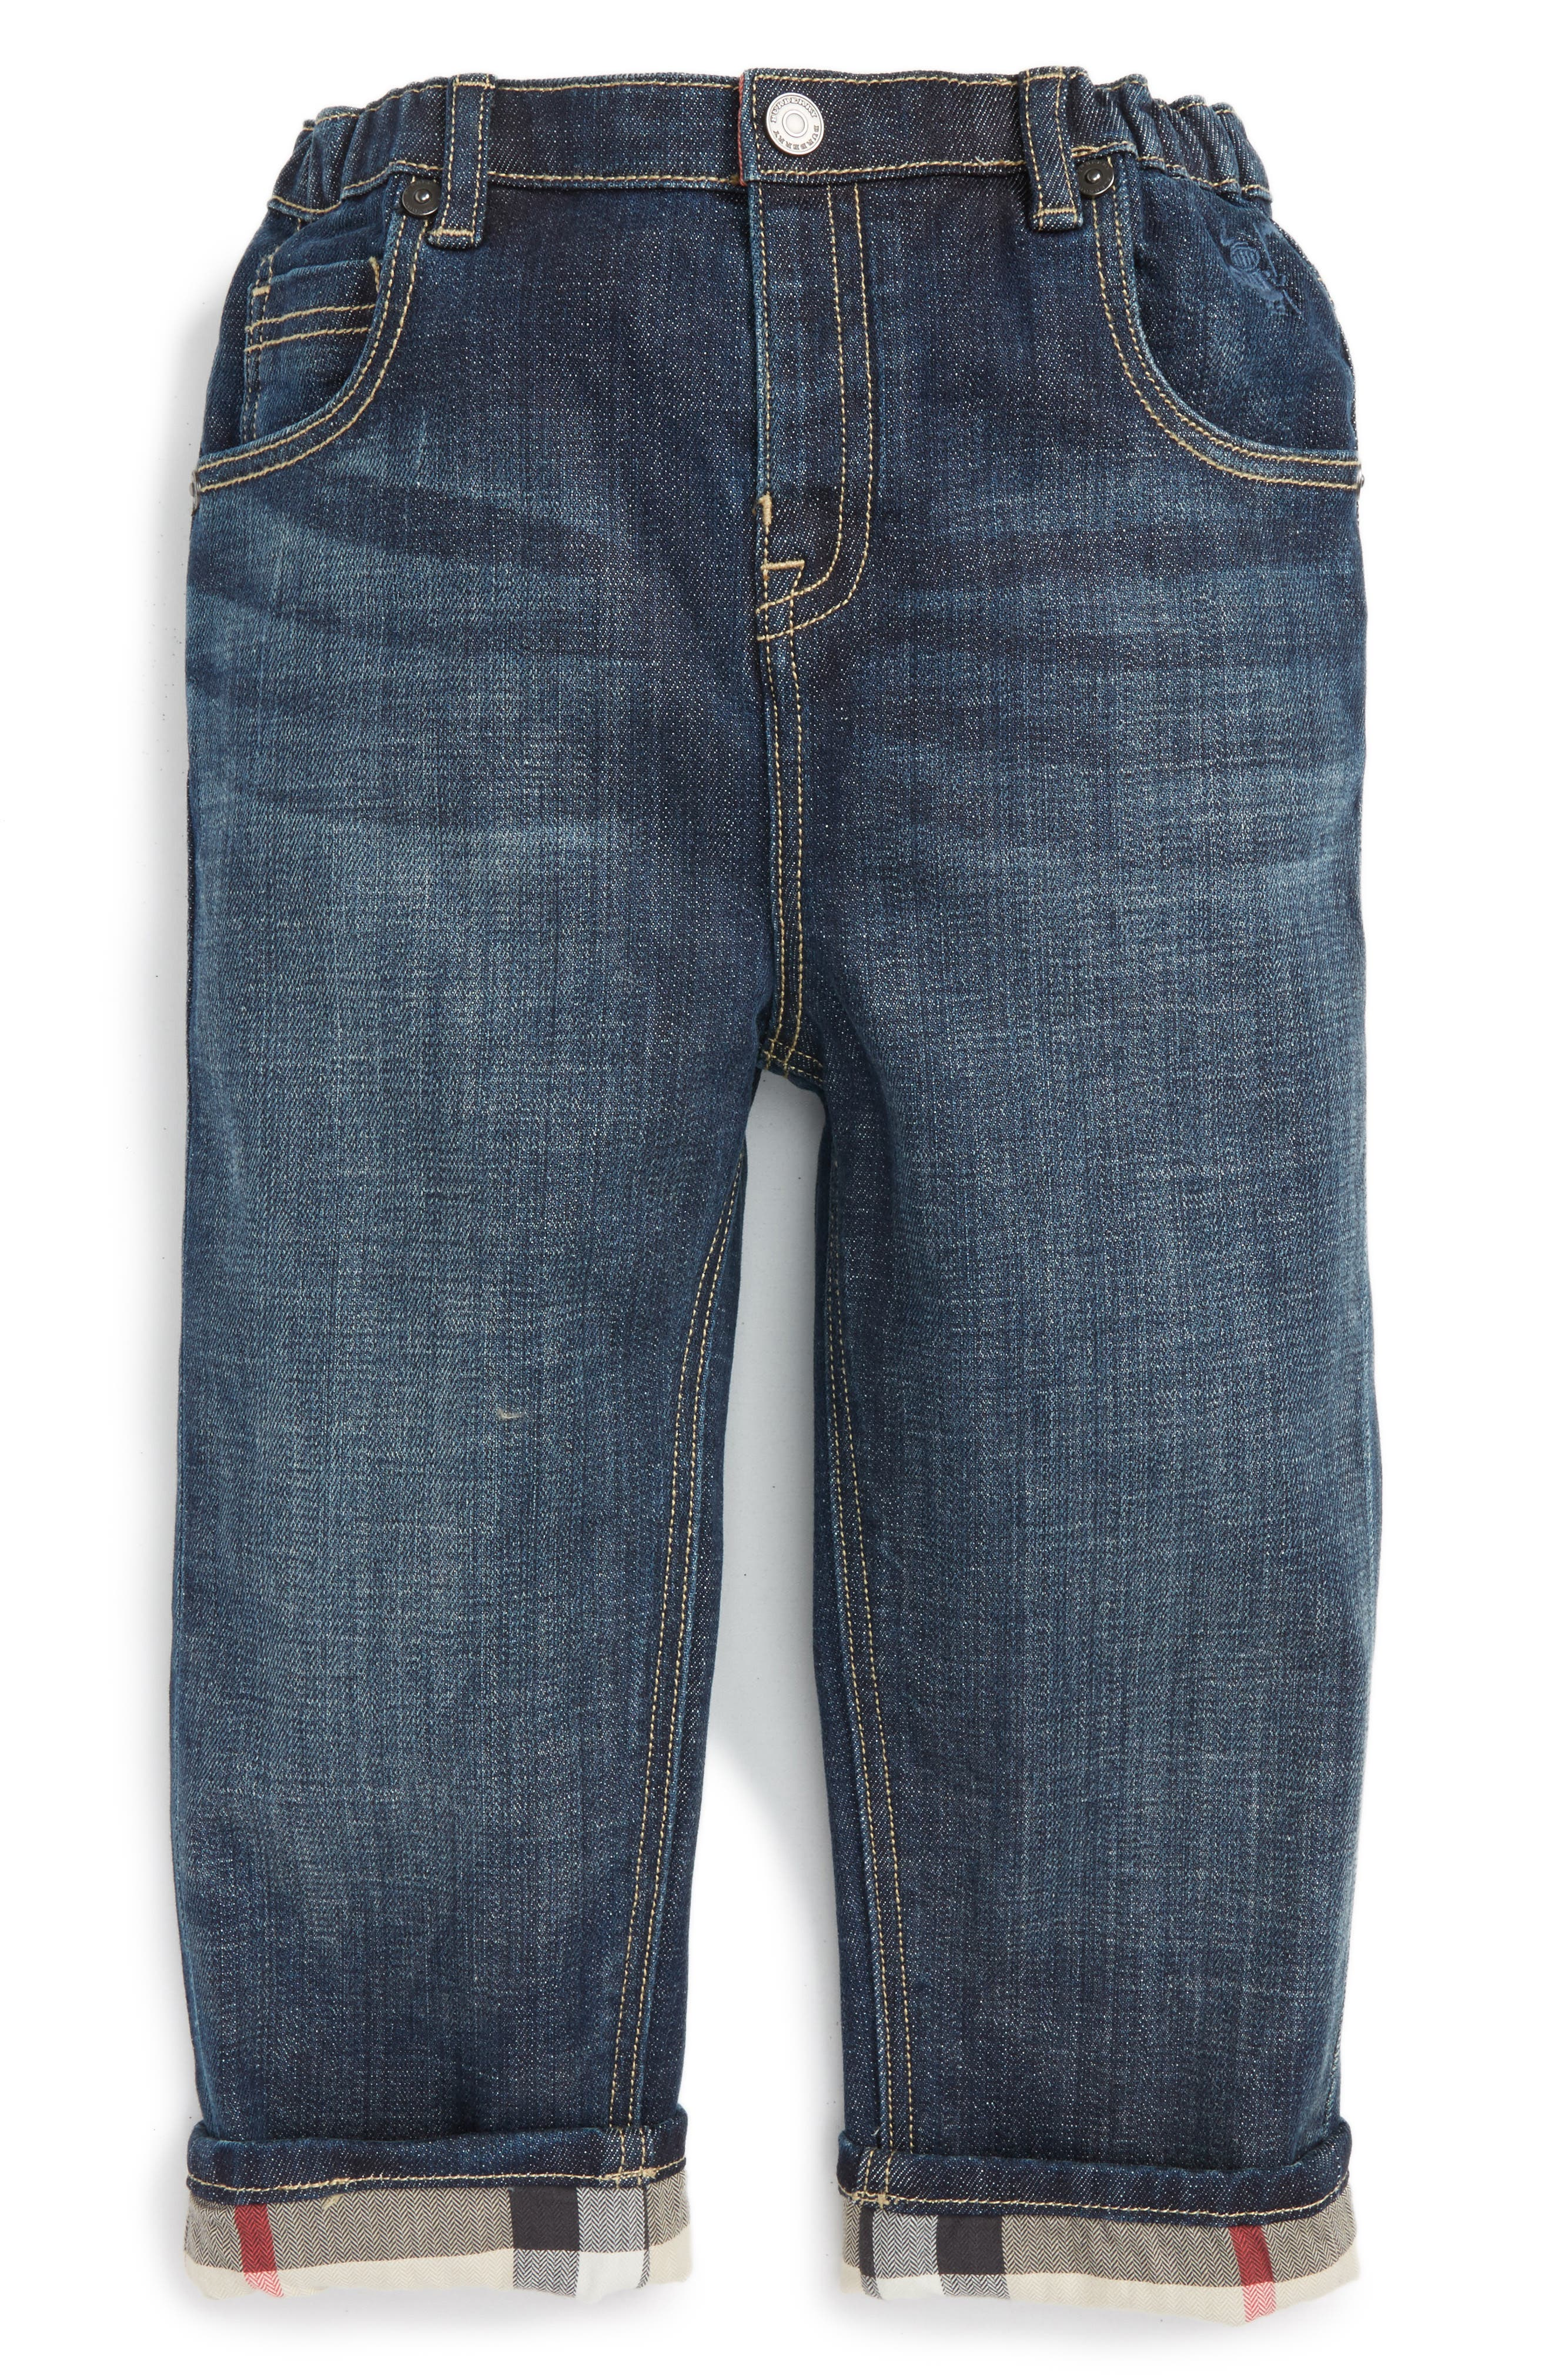 BURBERRY, Pierre Check Lined Jeans, Alternate thumbnail 2, color, 400